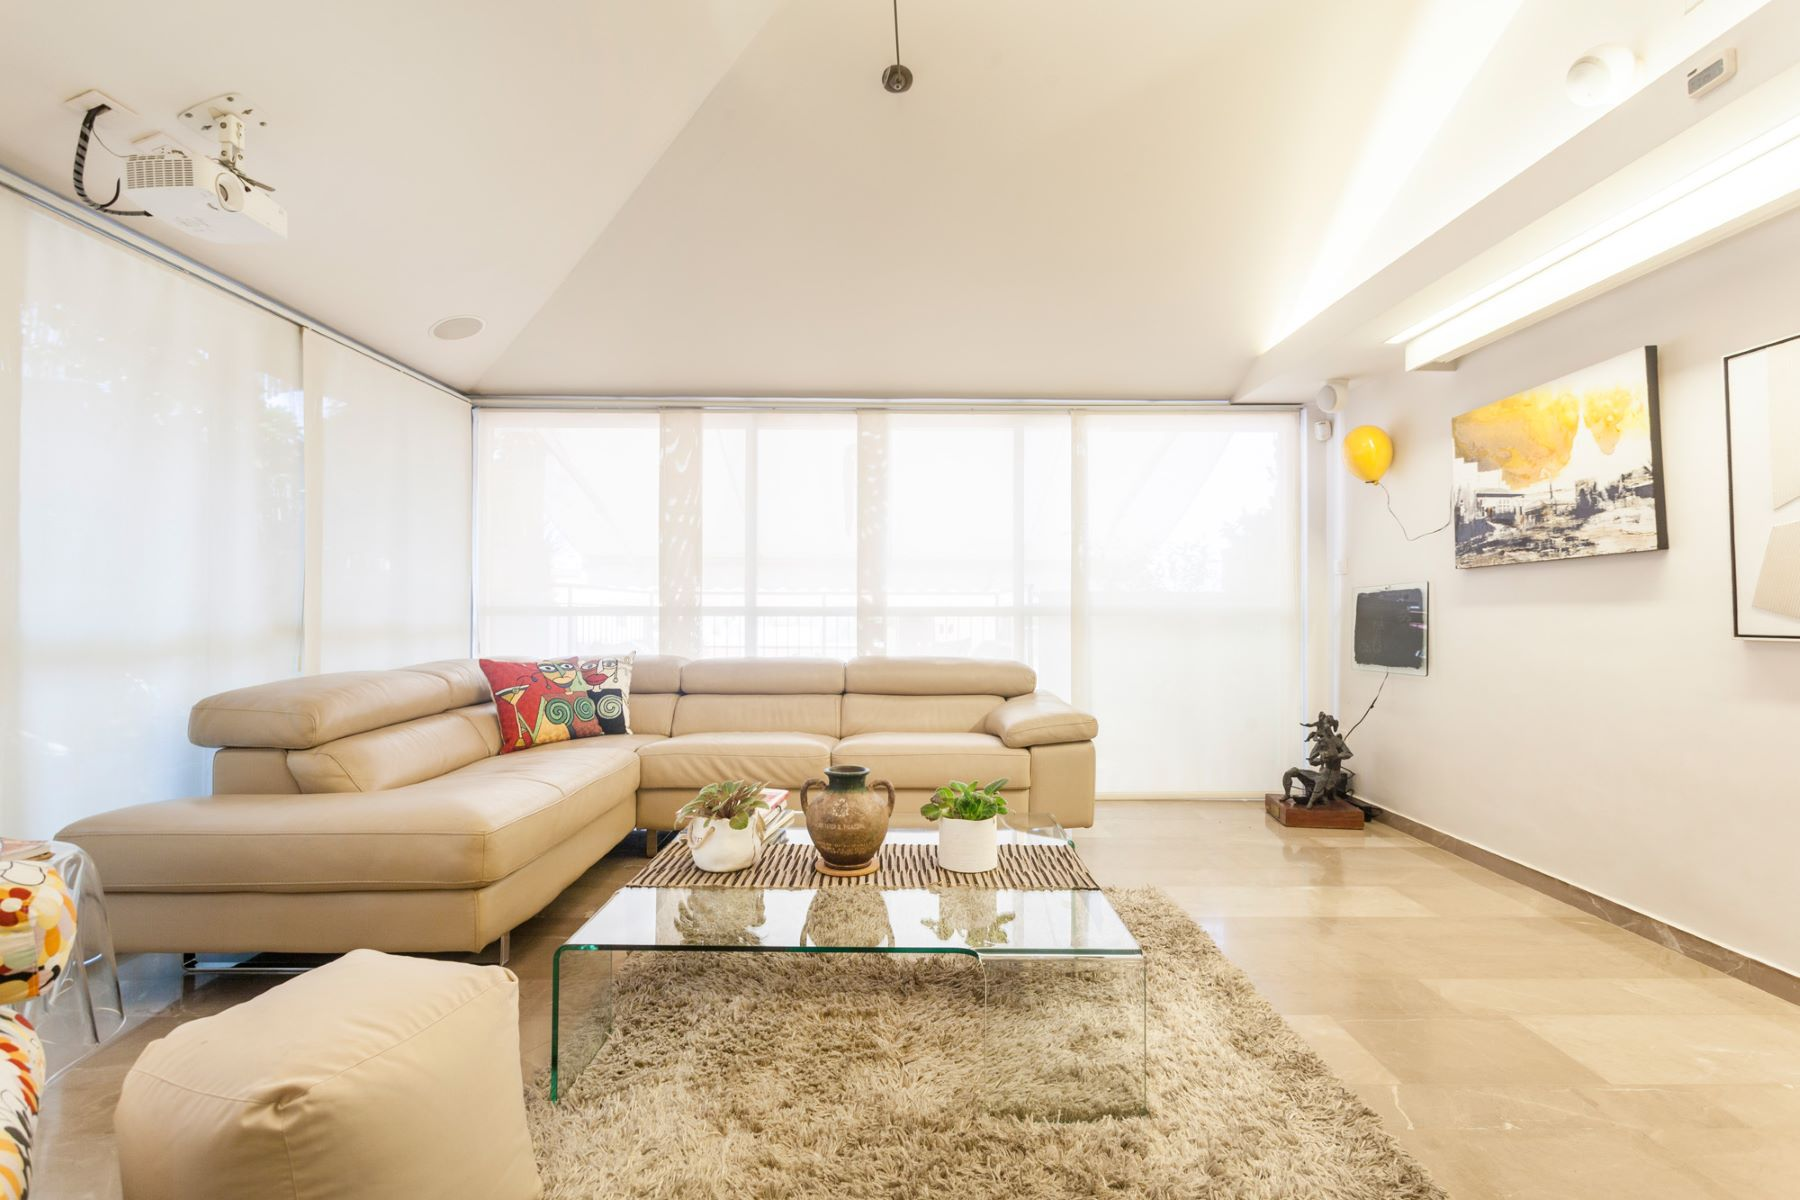 Additional photo for property listing at Unique Elegant Duplex in the Maronite Quarter 佳发, 以色列 以色列